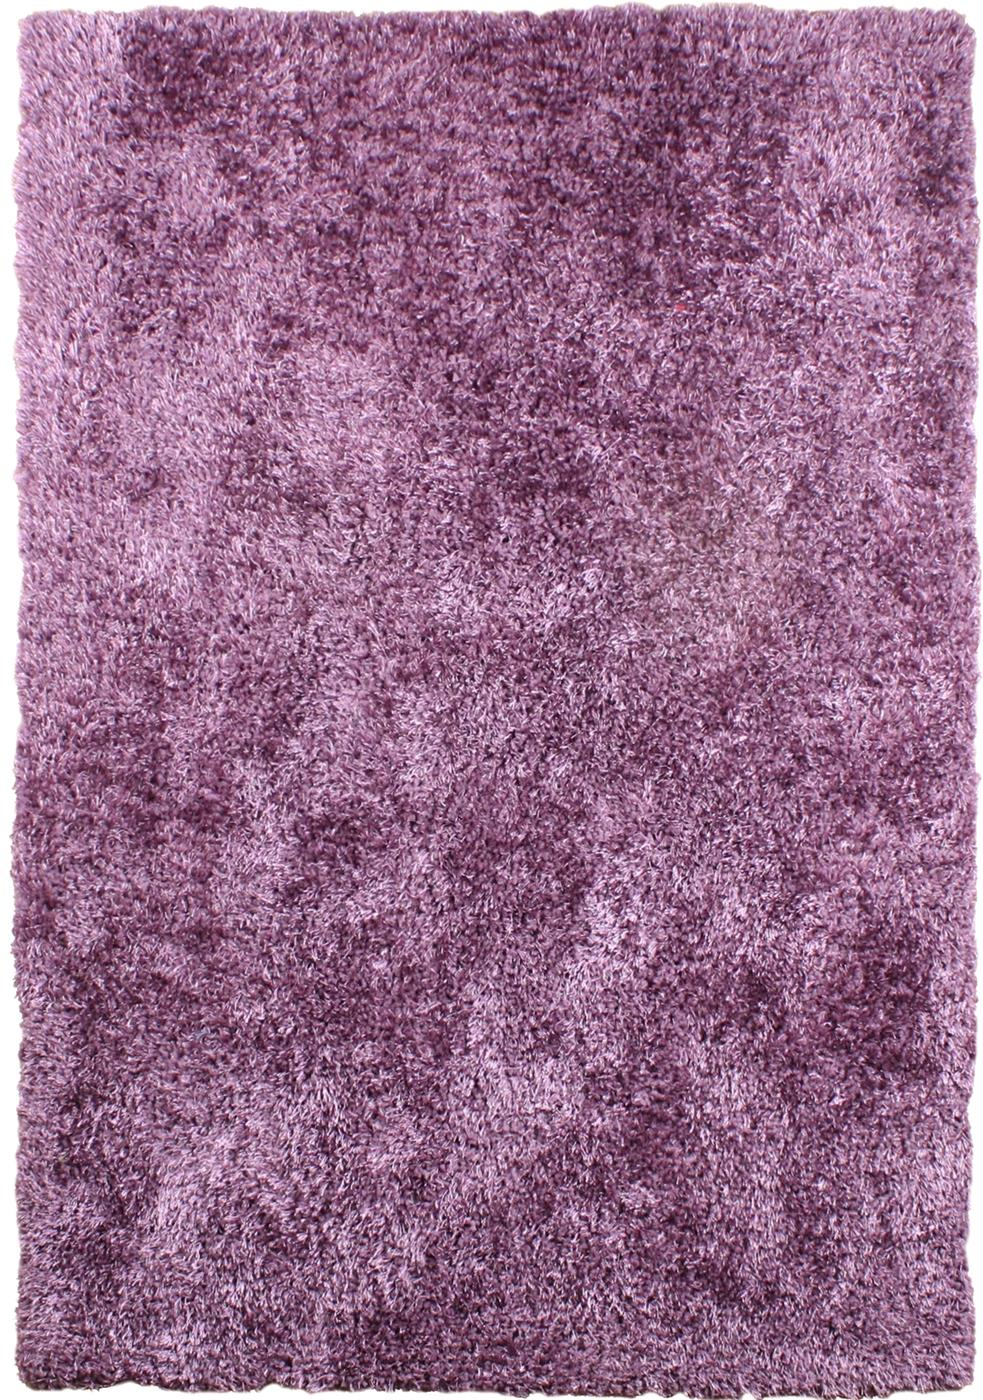 Diva Soft Shaggy Rugs Heather Purple Rugs